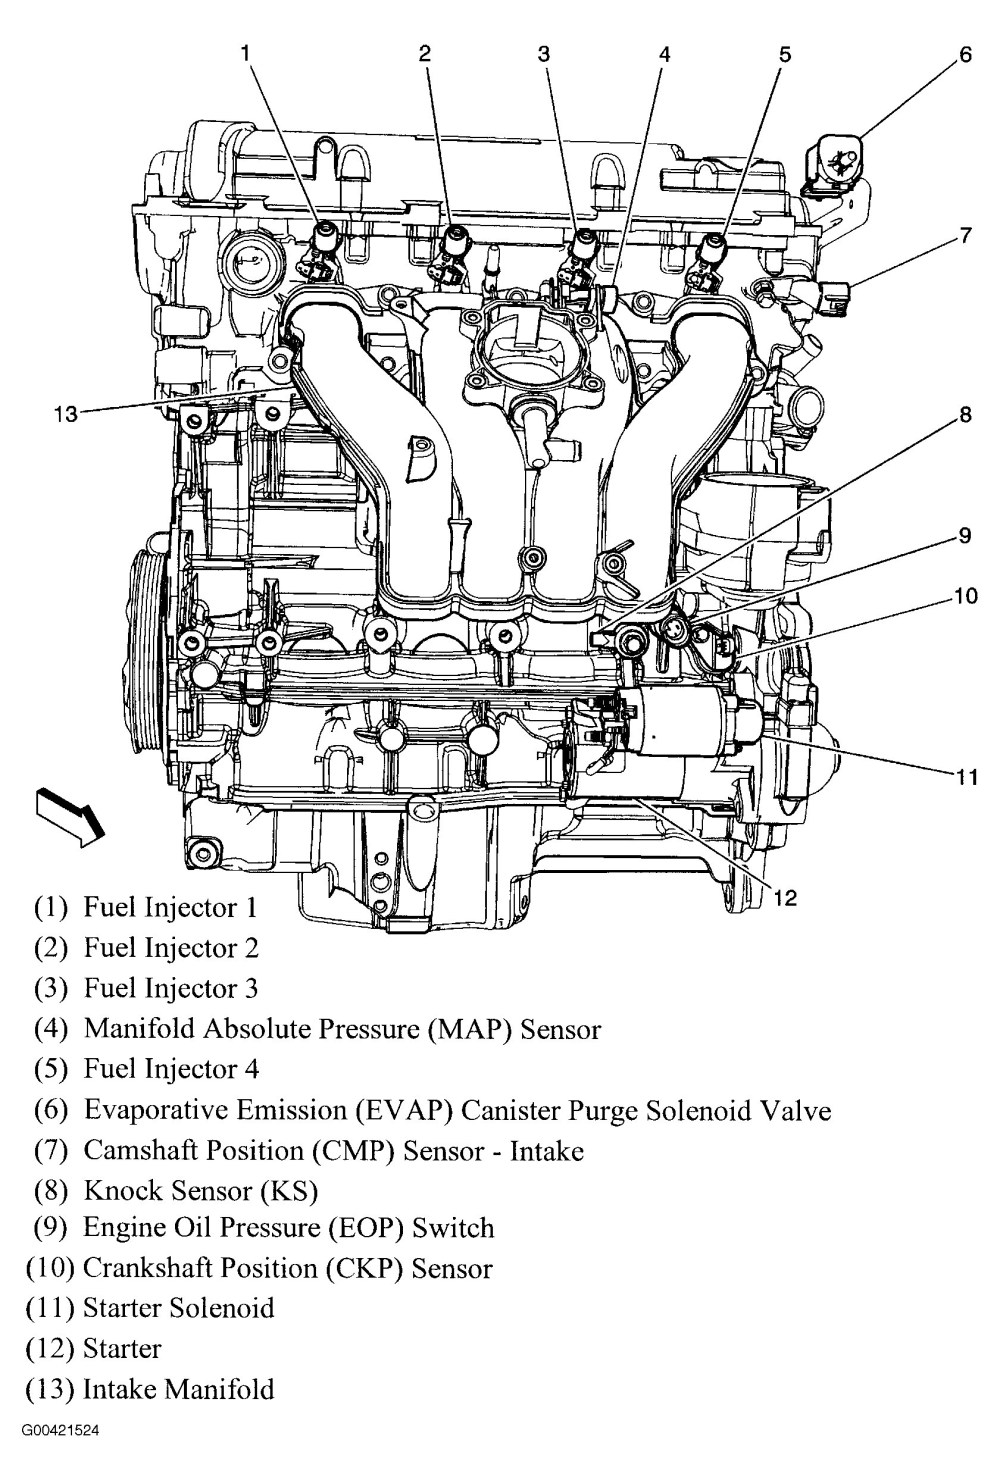 medium resolution of 2000 oldsmobile intrigue engine diagram furthermore 1965 2000 oldsmobile intrigue engine diagram